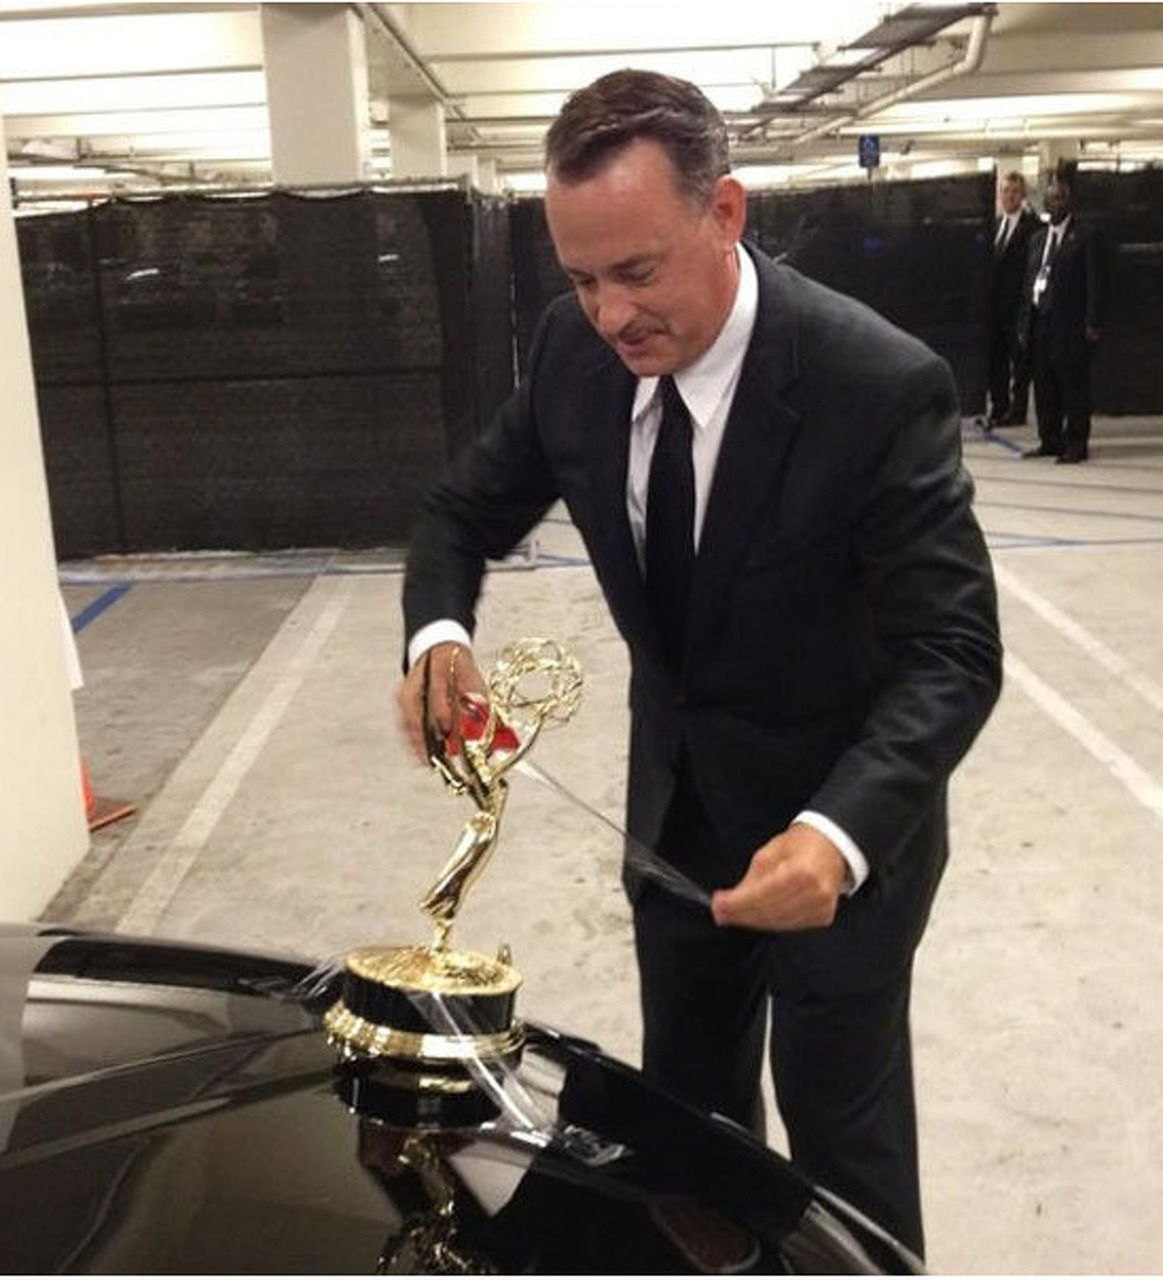 Tom Hanks tapes Emmy to Town Car, hilarity ensues